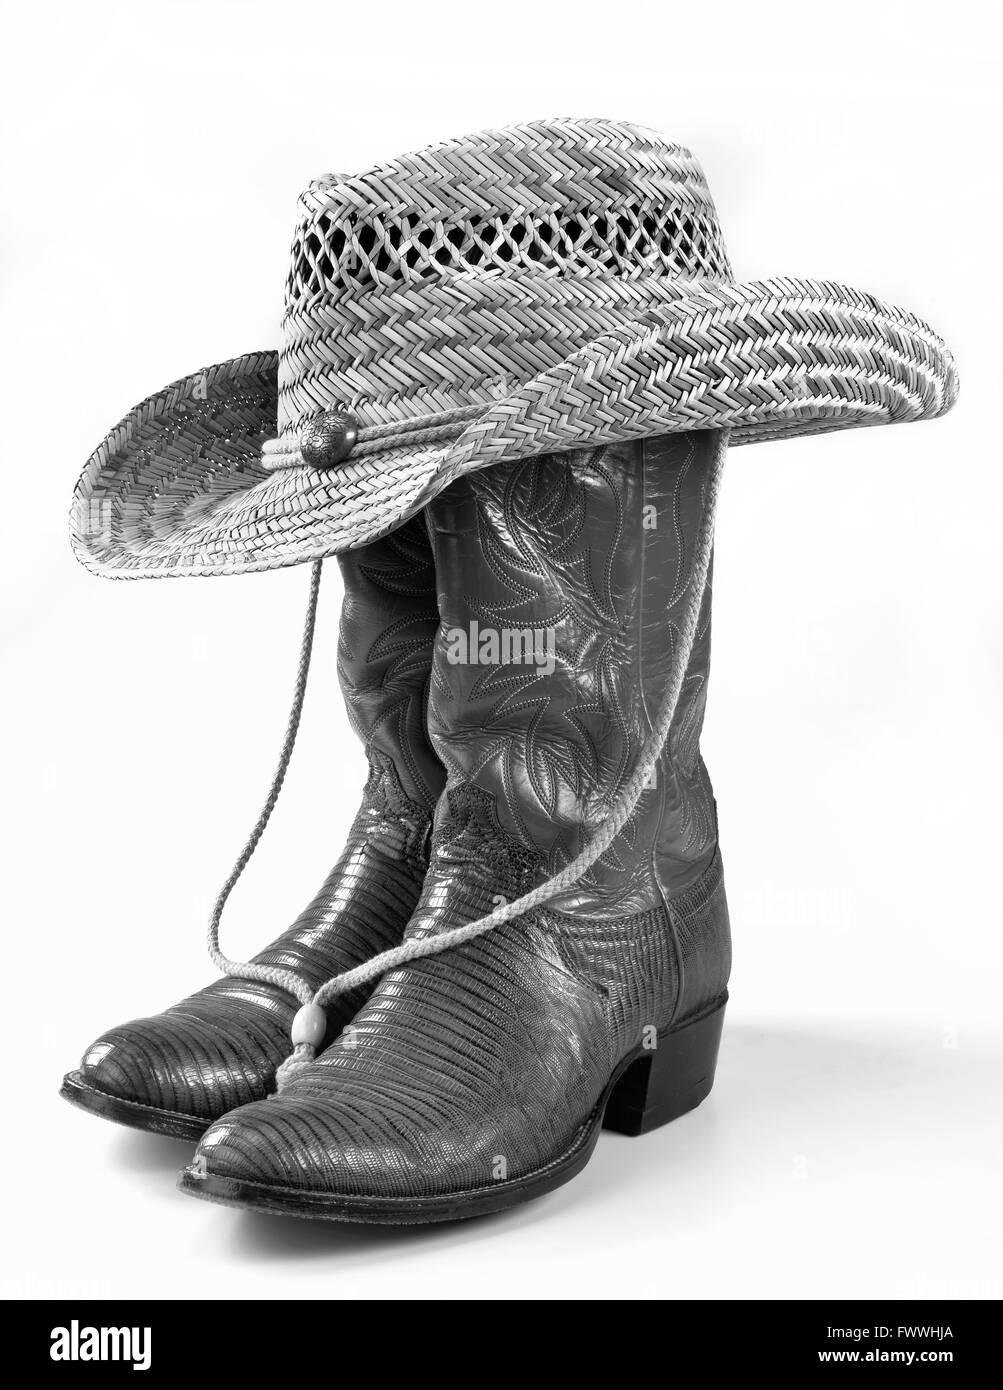 121fd27c4f5 Cowboy boots and straw hat in black and white. - Stock Image